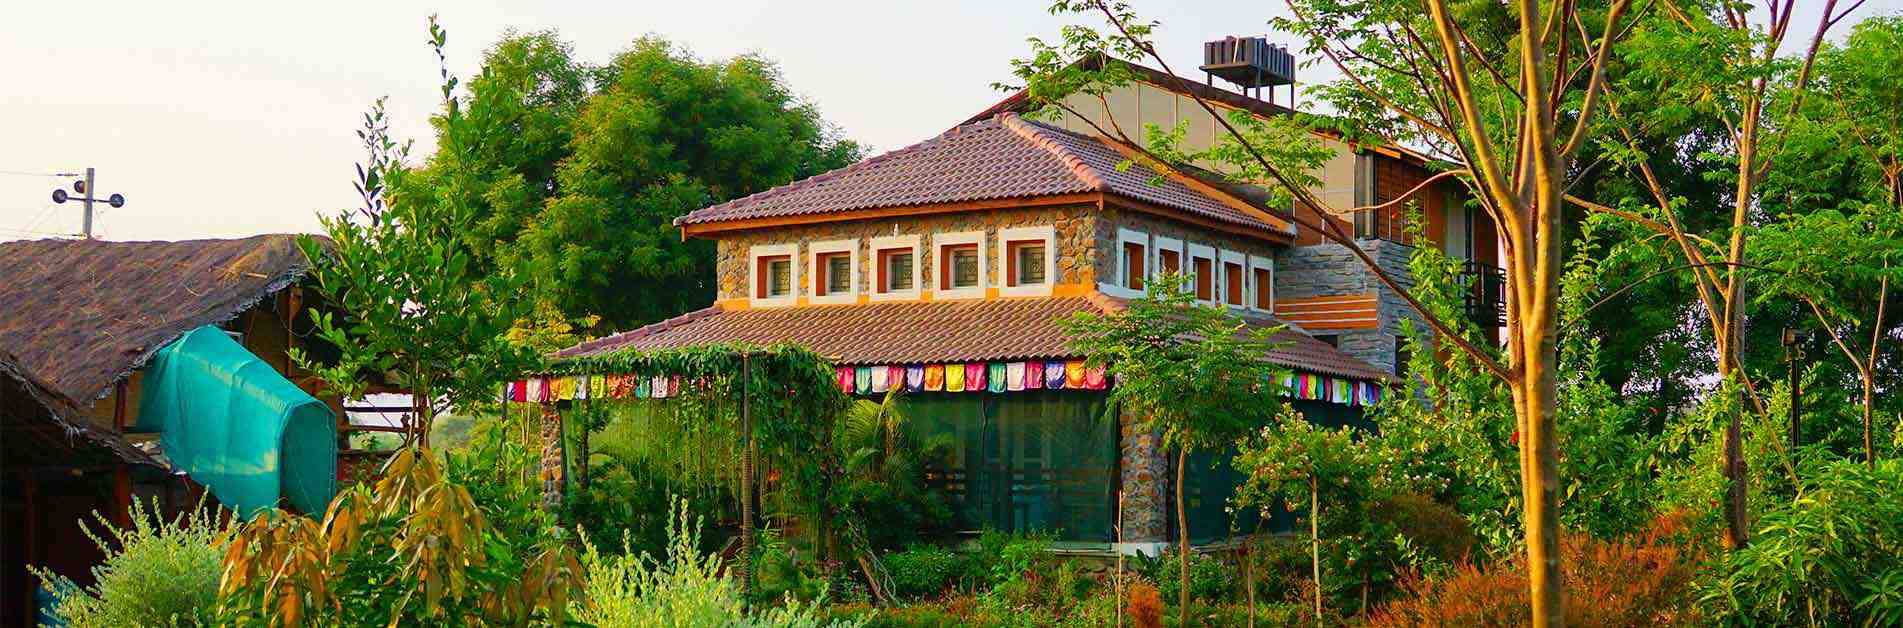 Chukkimane Eco Living near Bangalore